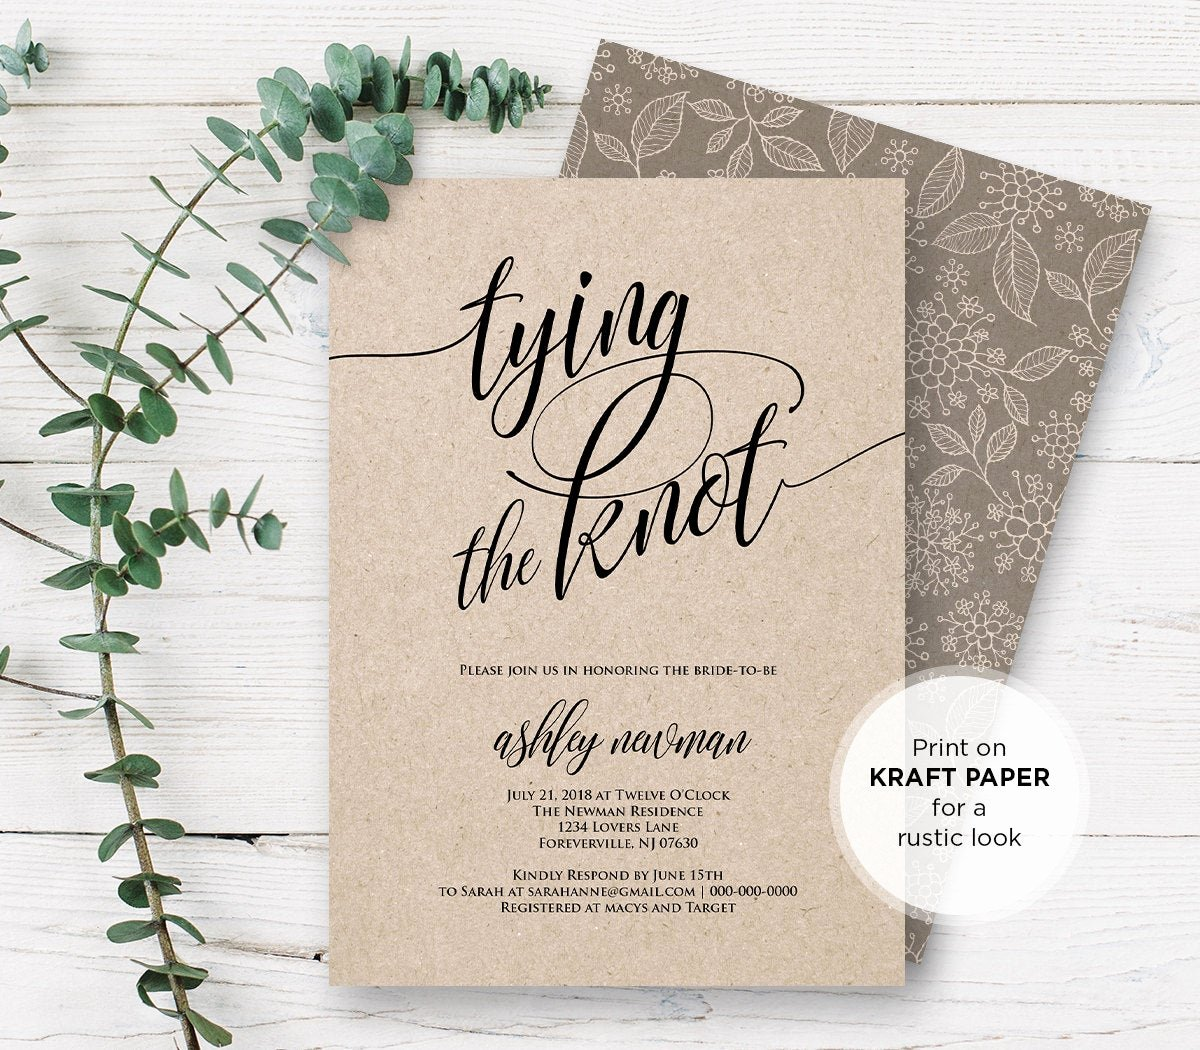 Free Bridal Shower Invitation Printables Unique Rustic Bridal Shower Invitation Printable Tying the Knot